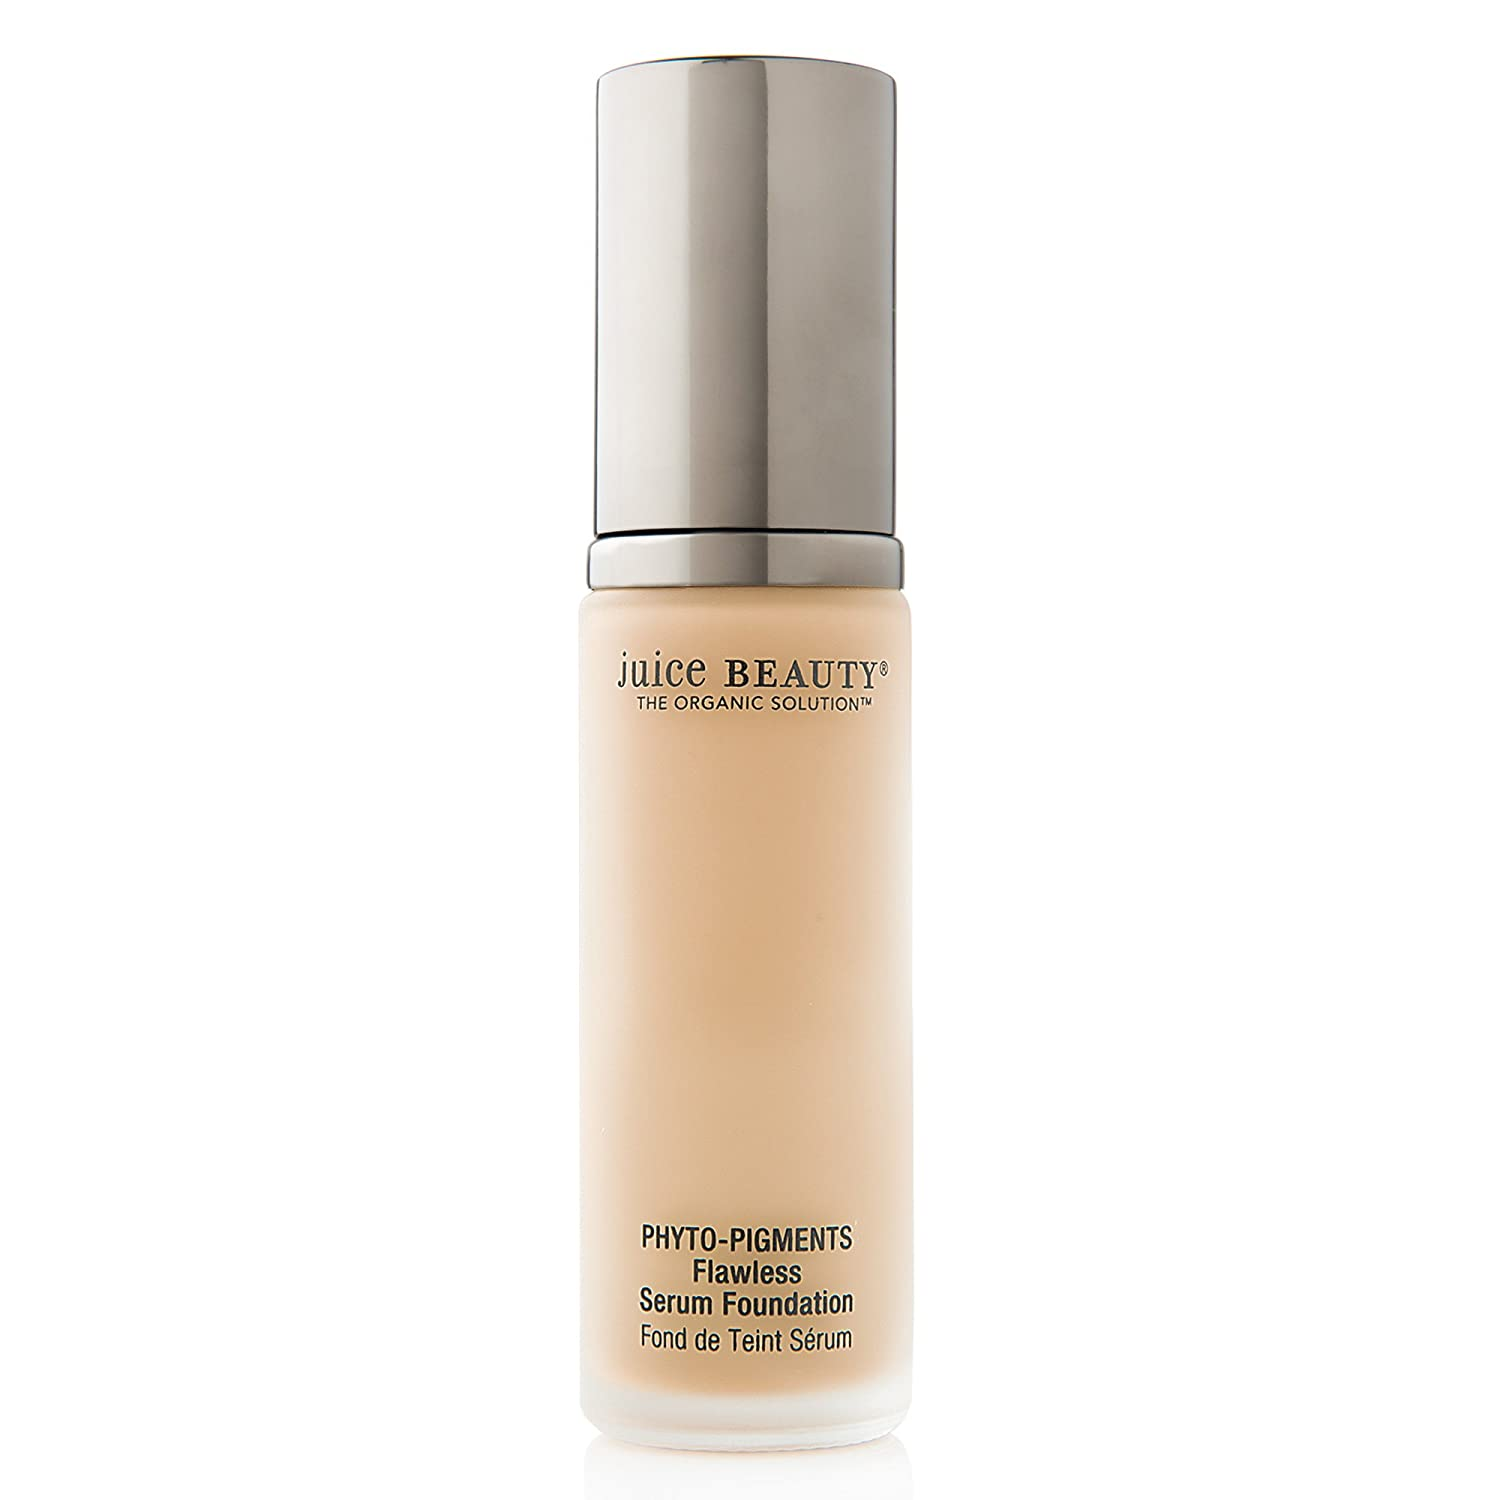 Juice Beauty Pytho-pigments Flawless Serum Foundation